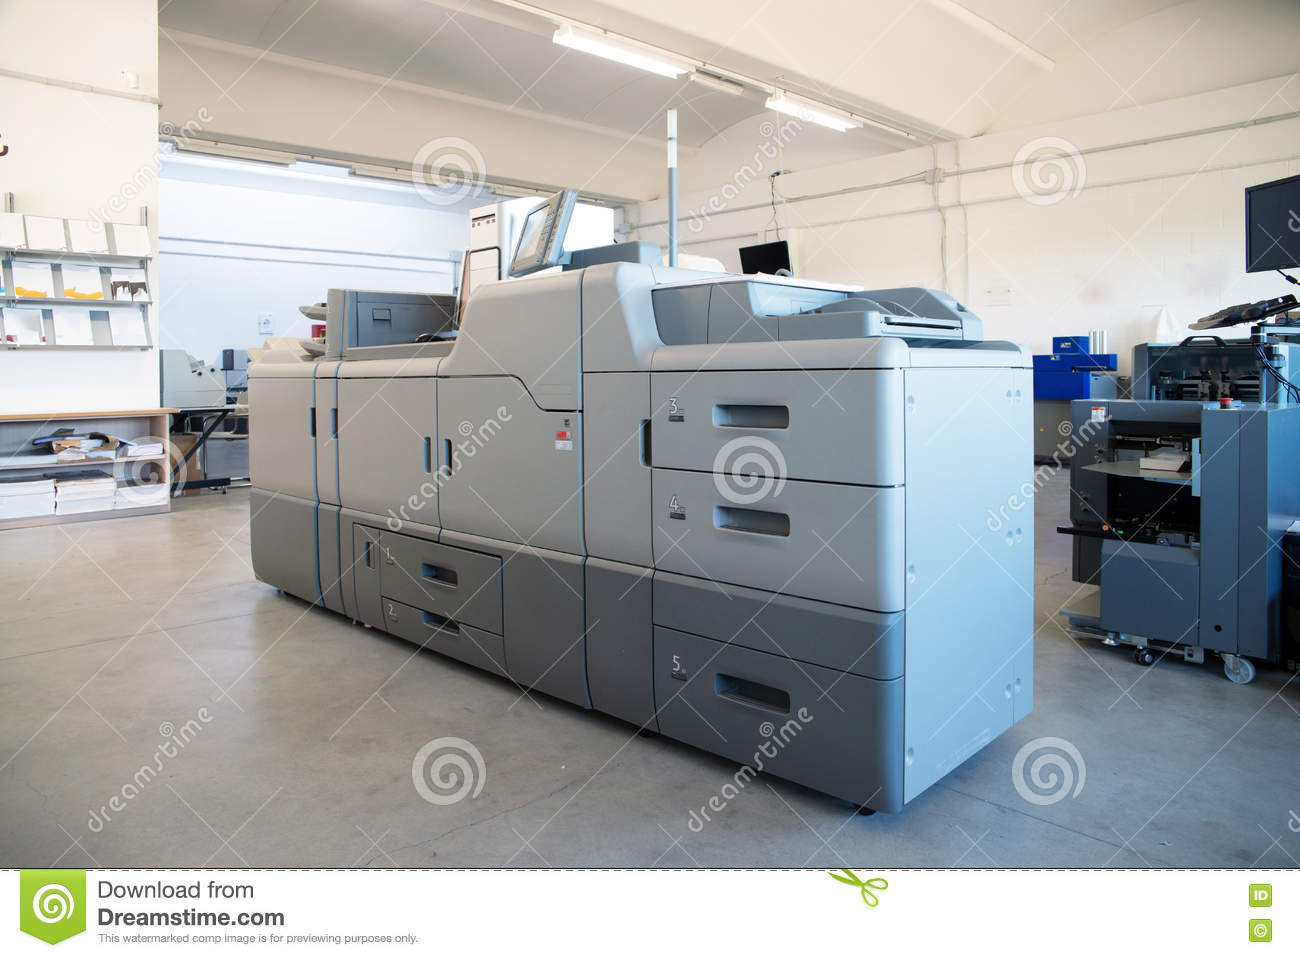 Print Shop - Digital Press Printing Machine Stock Photo - Image of